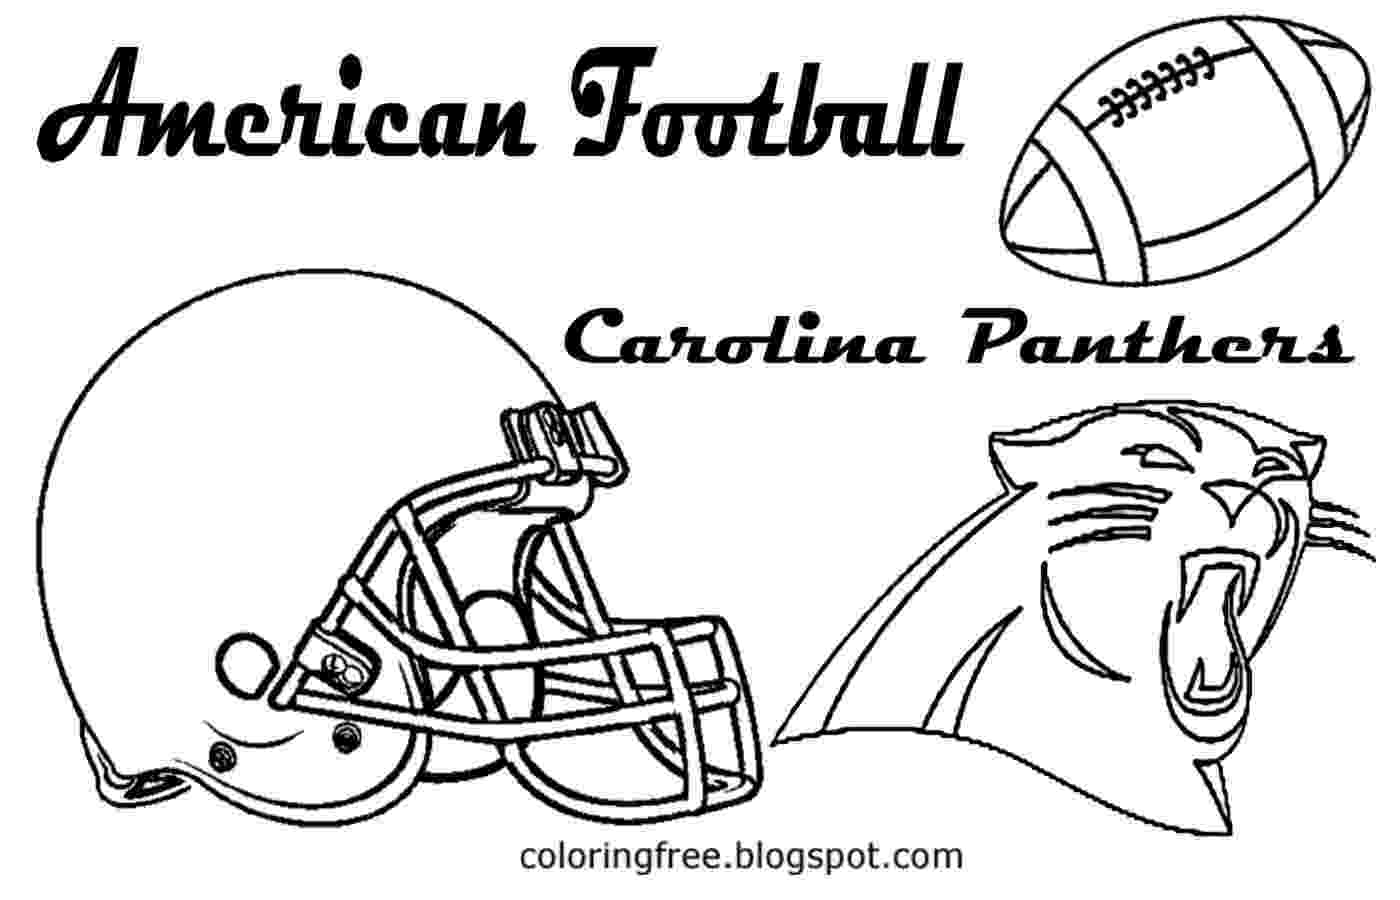 carolina panthers coloring pages football helmet coloring pages sports coloring pages pages carolina coloring panthers